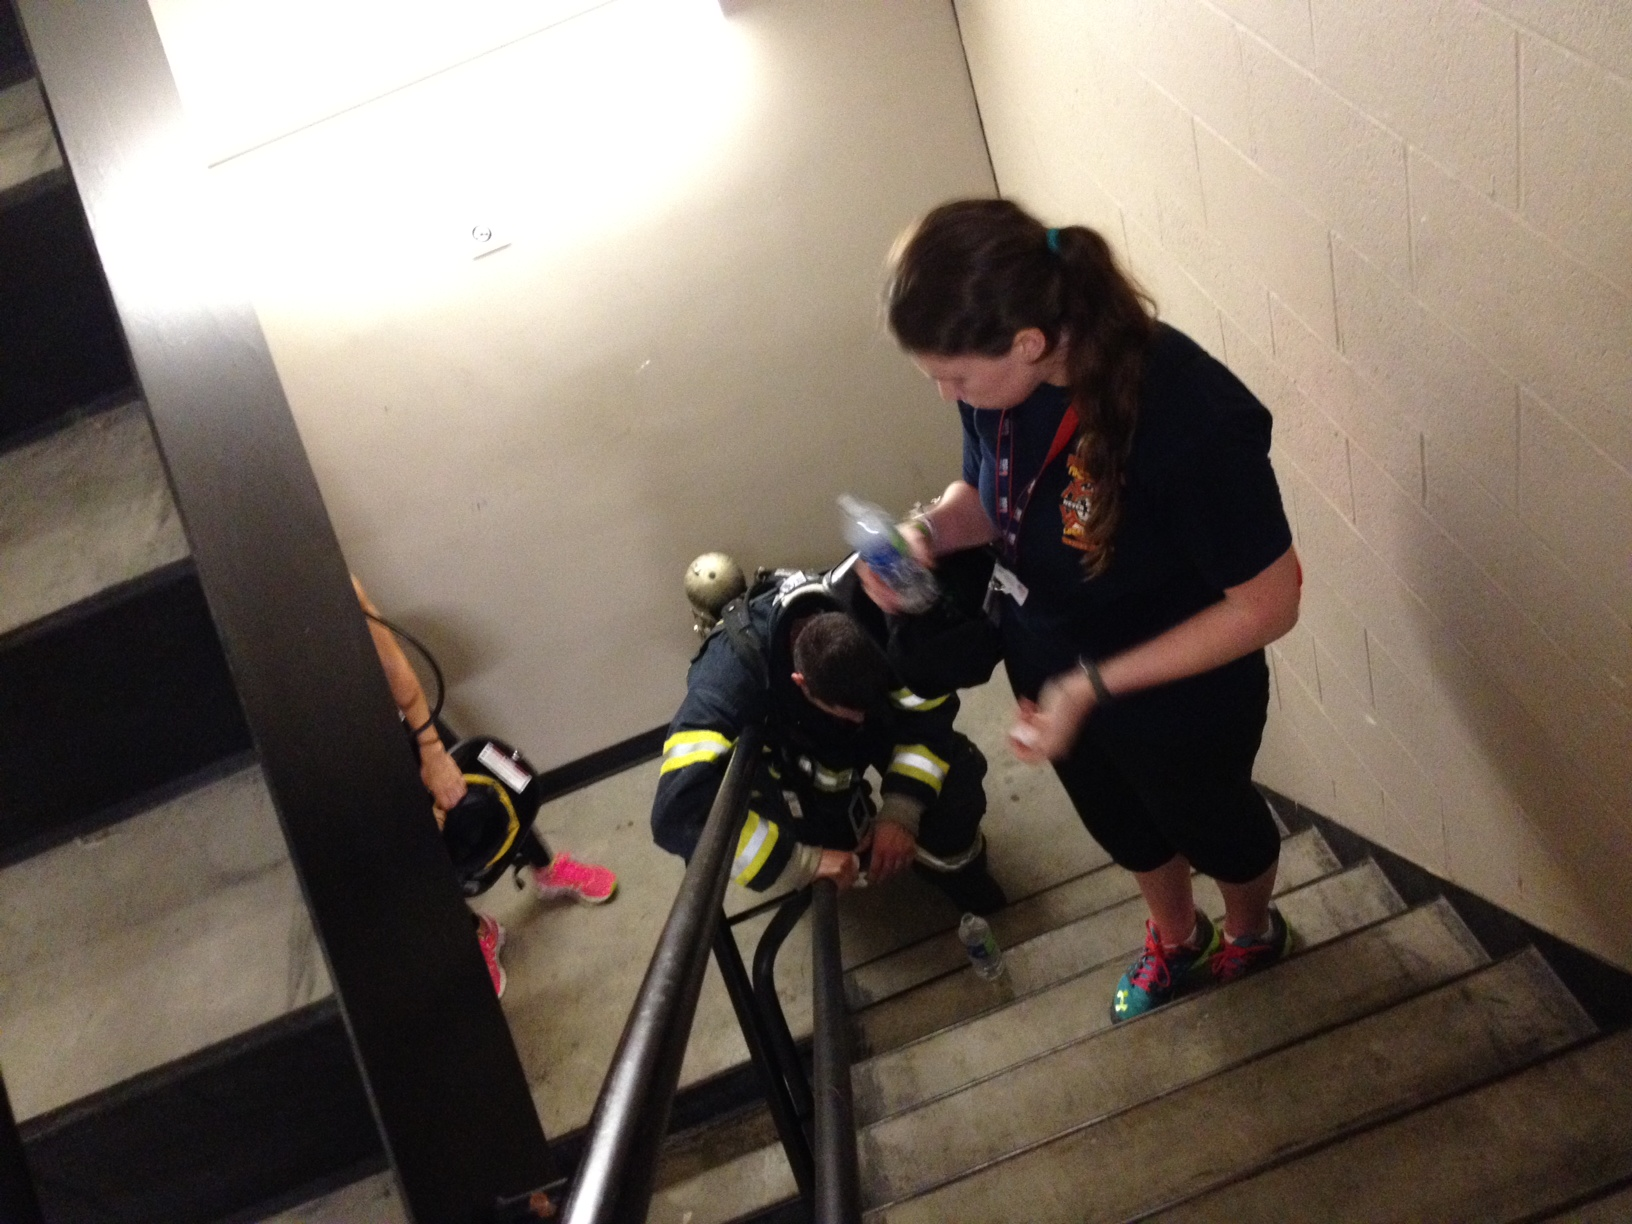 9-11 Memorial Stair Climb Thirteen